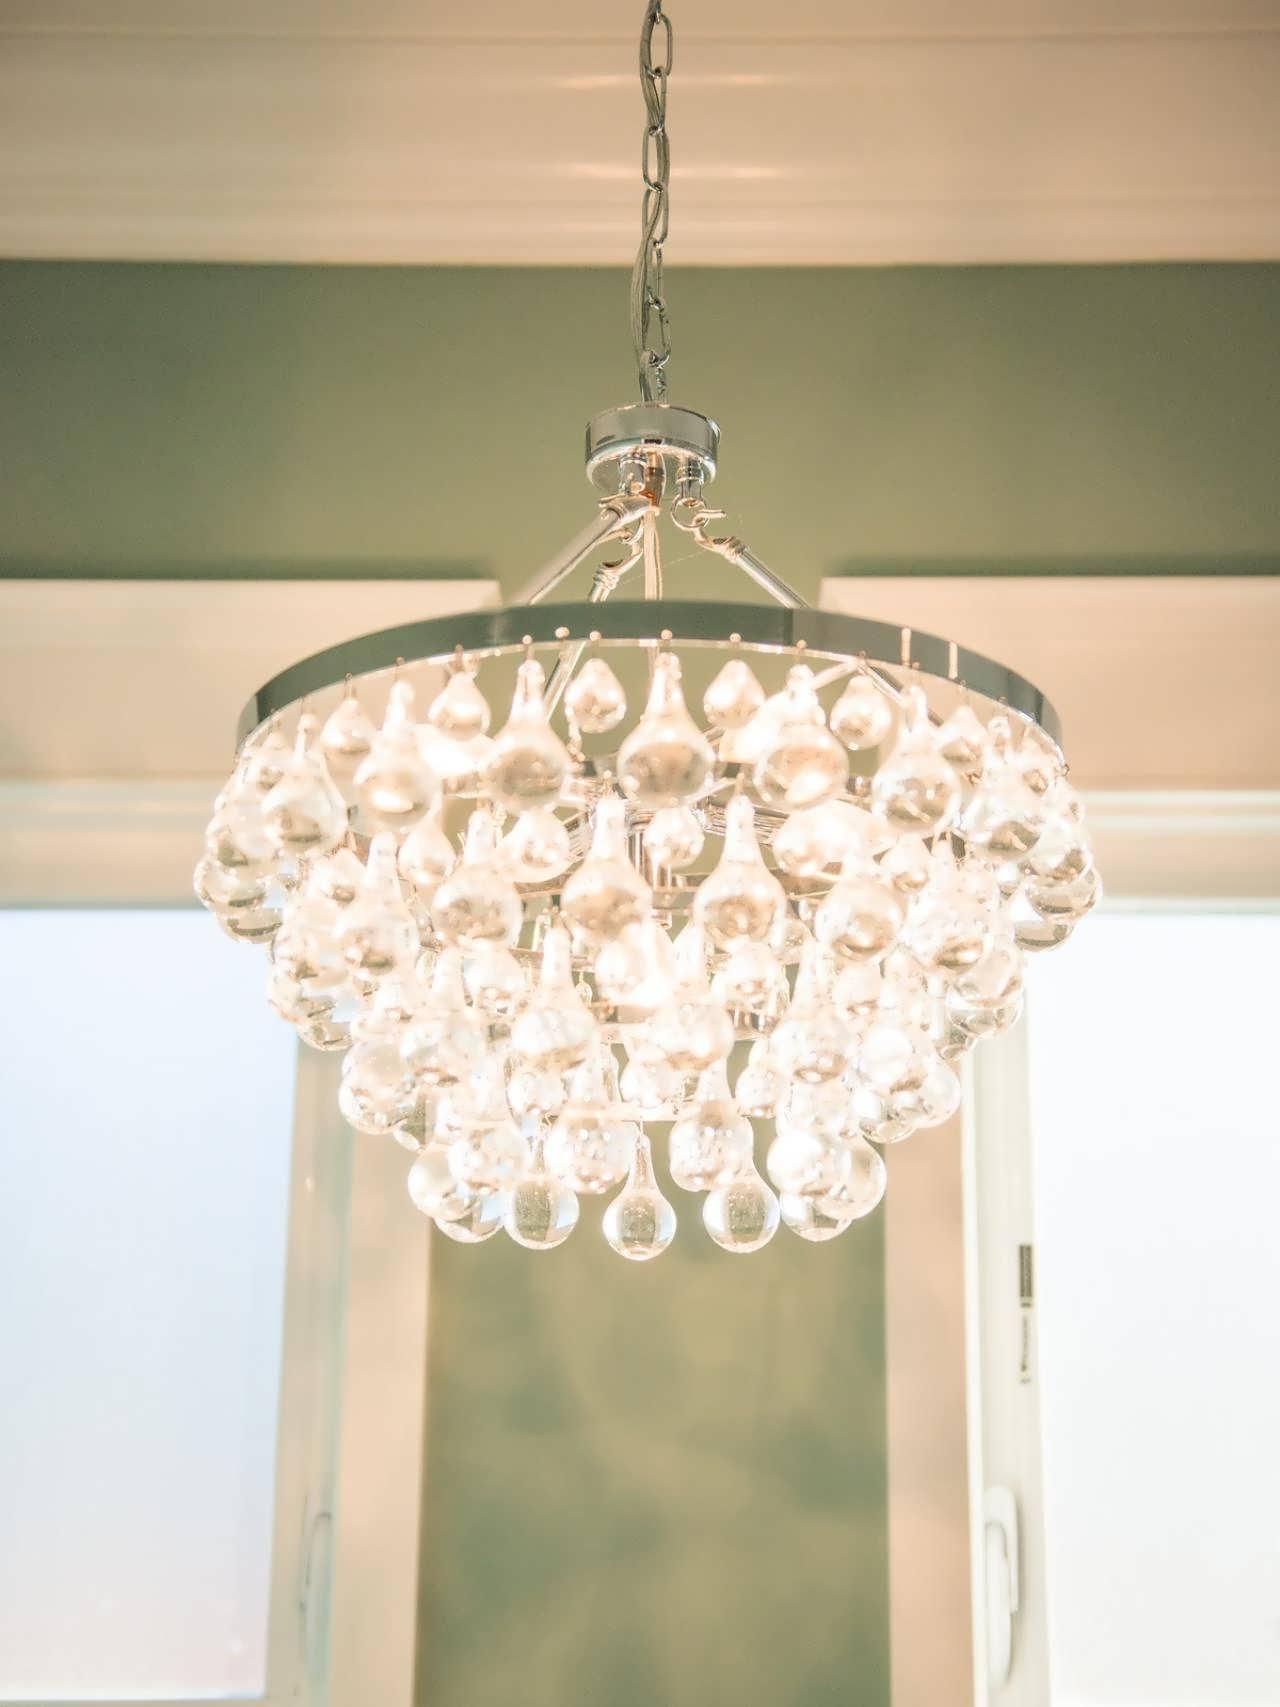 Shabby Chic Chandeliers Intended For Widely Used Chandeliers : Shabby Chic Chandeliers Elegant Chandeliers Design (View 12 of 15)